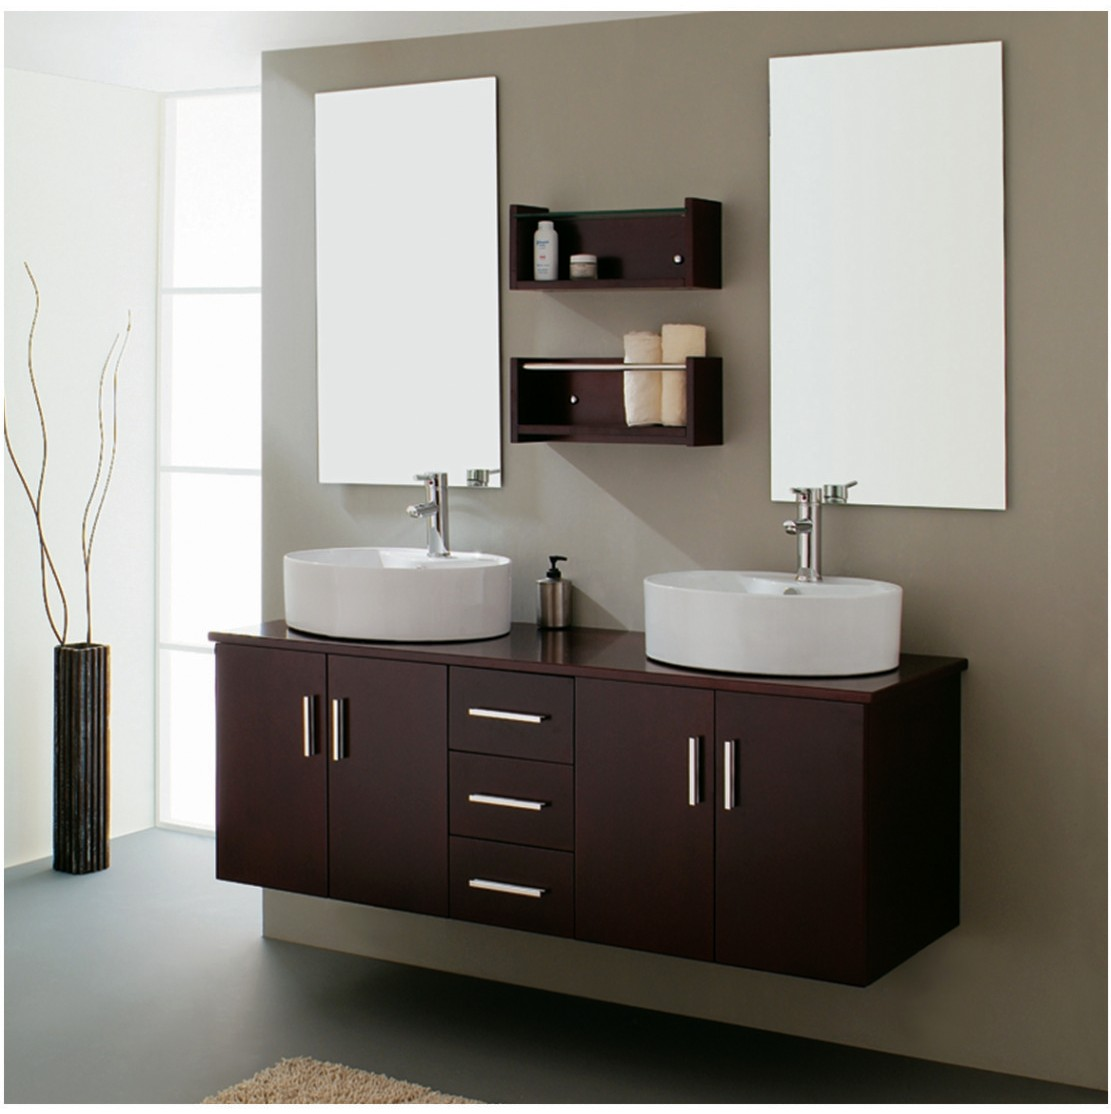 modern bathroom double sink home decorating ideas ForModern Contemporary Bathroom Vanities